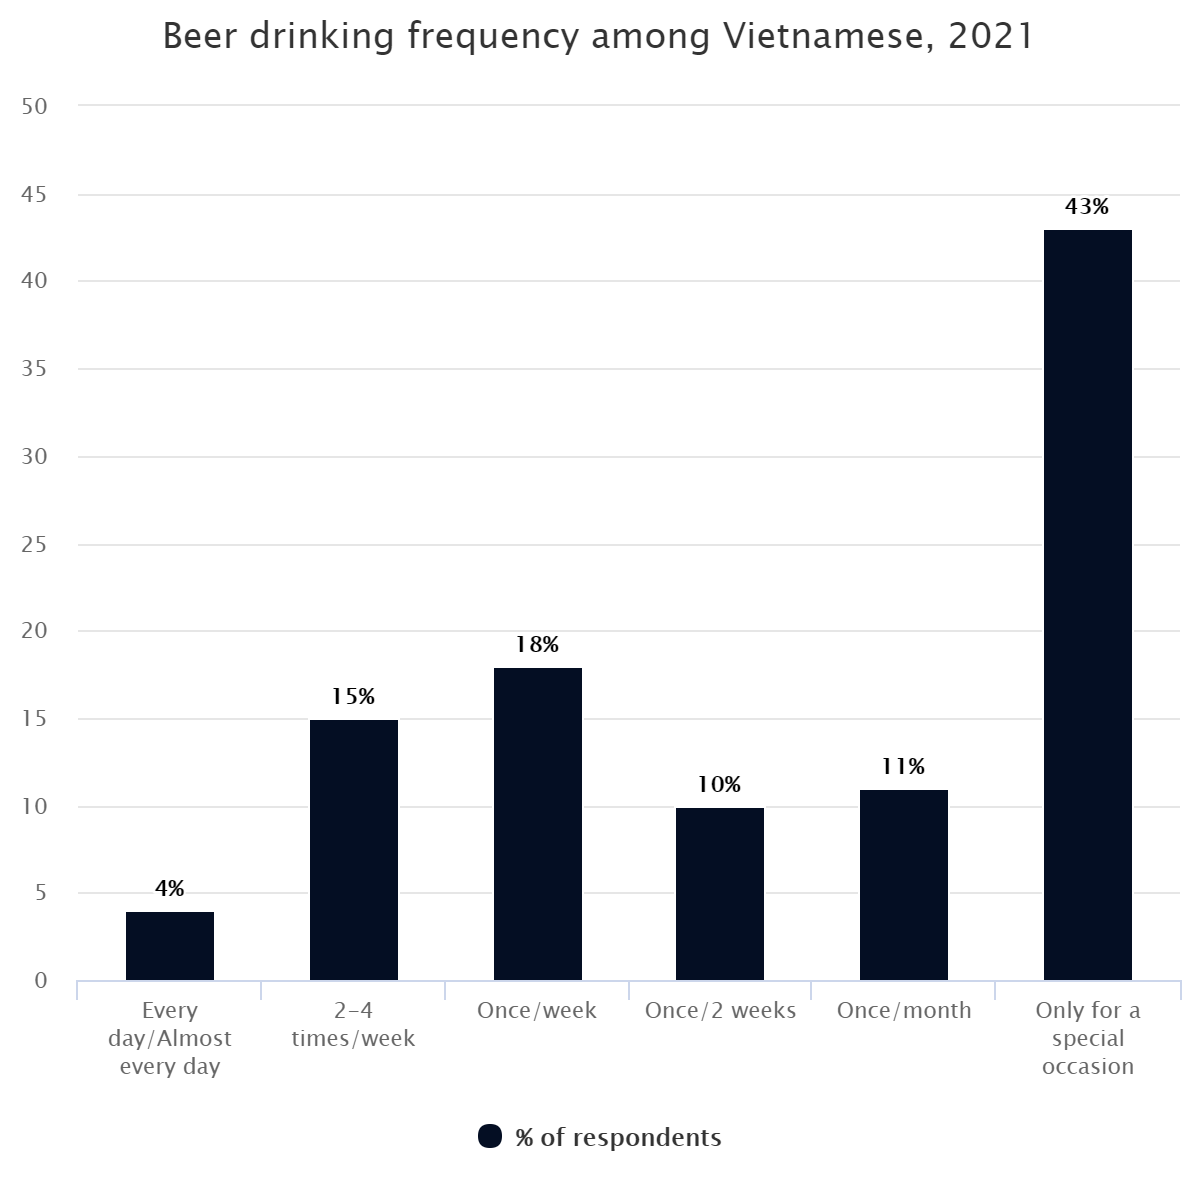 Beer drinking frequency among Vietnamese, 2021